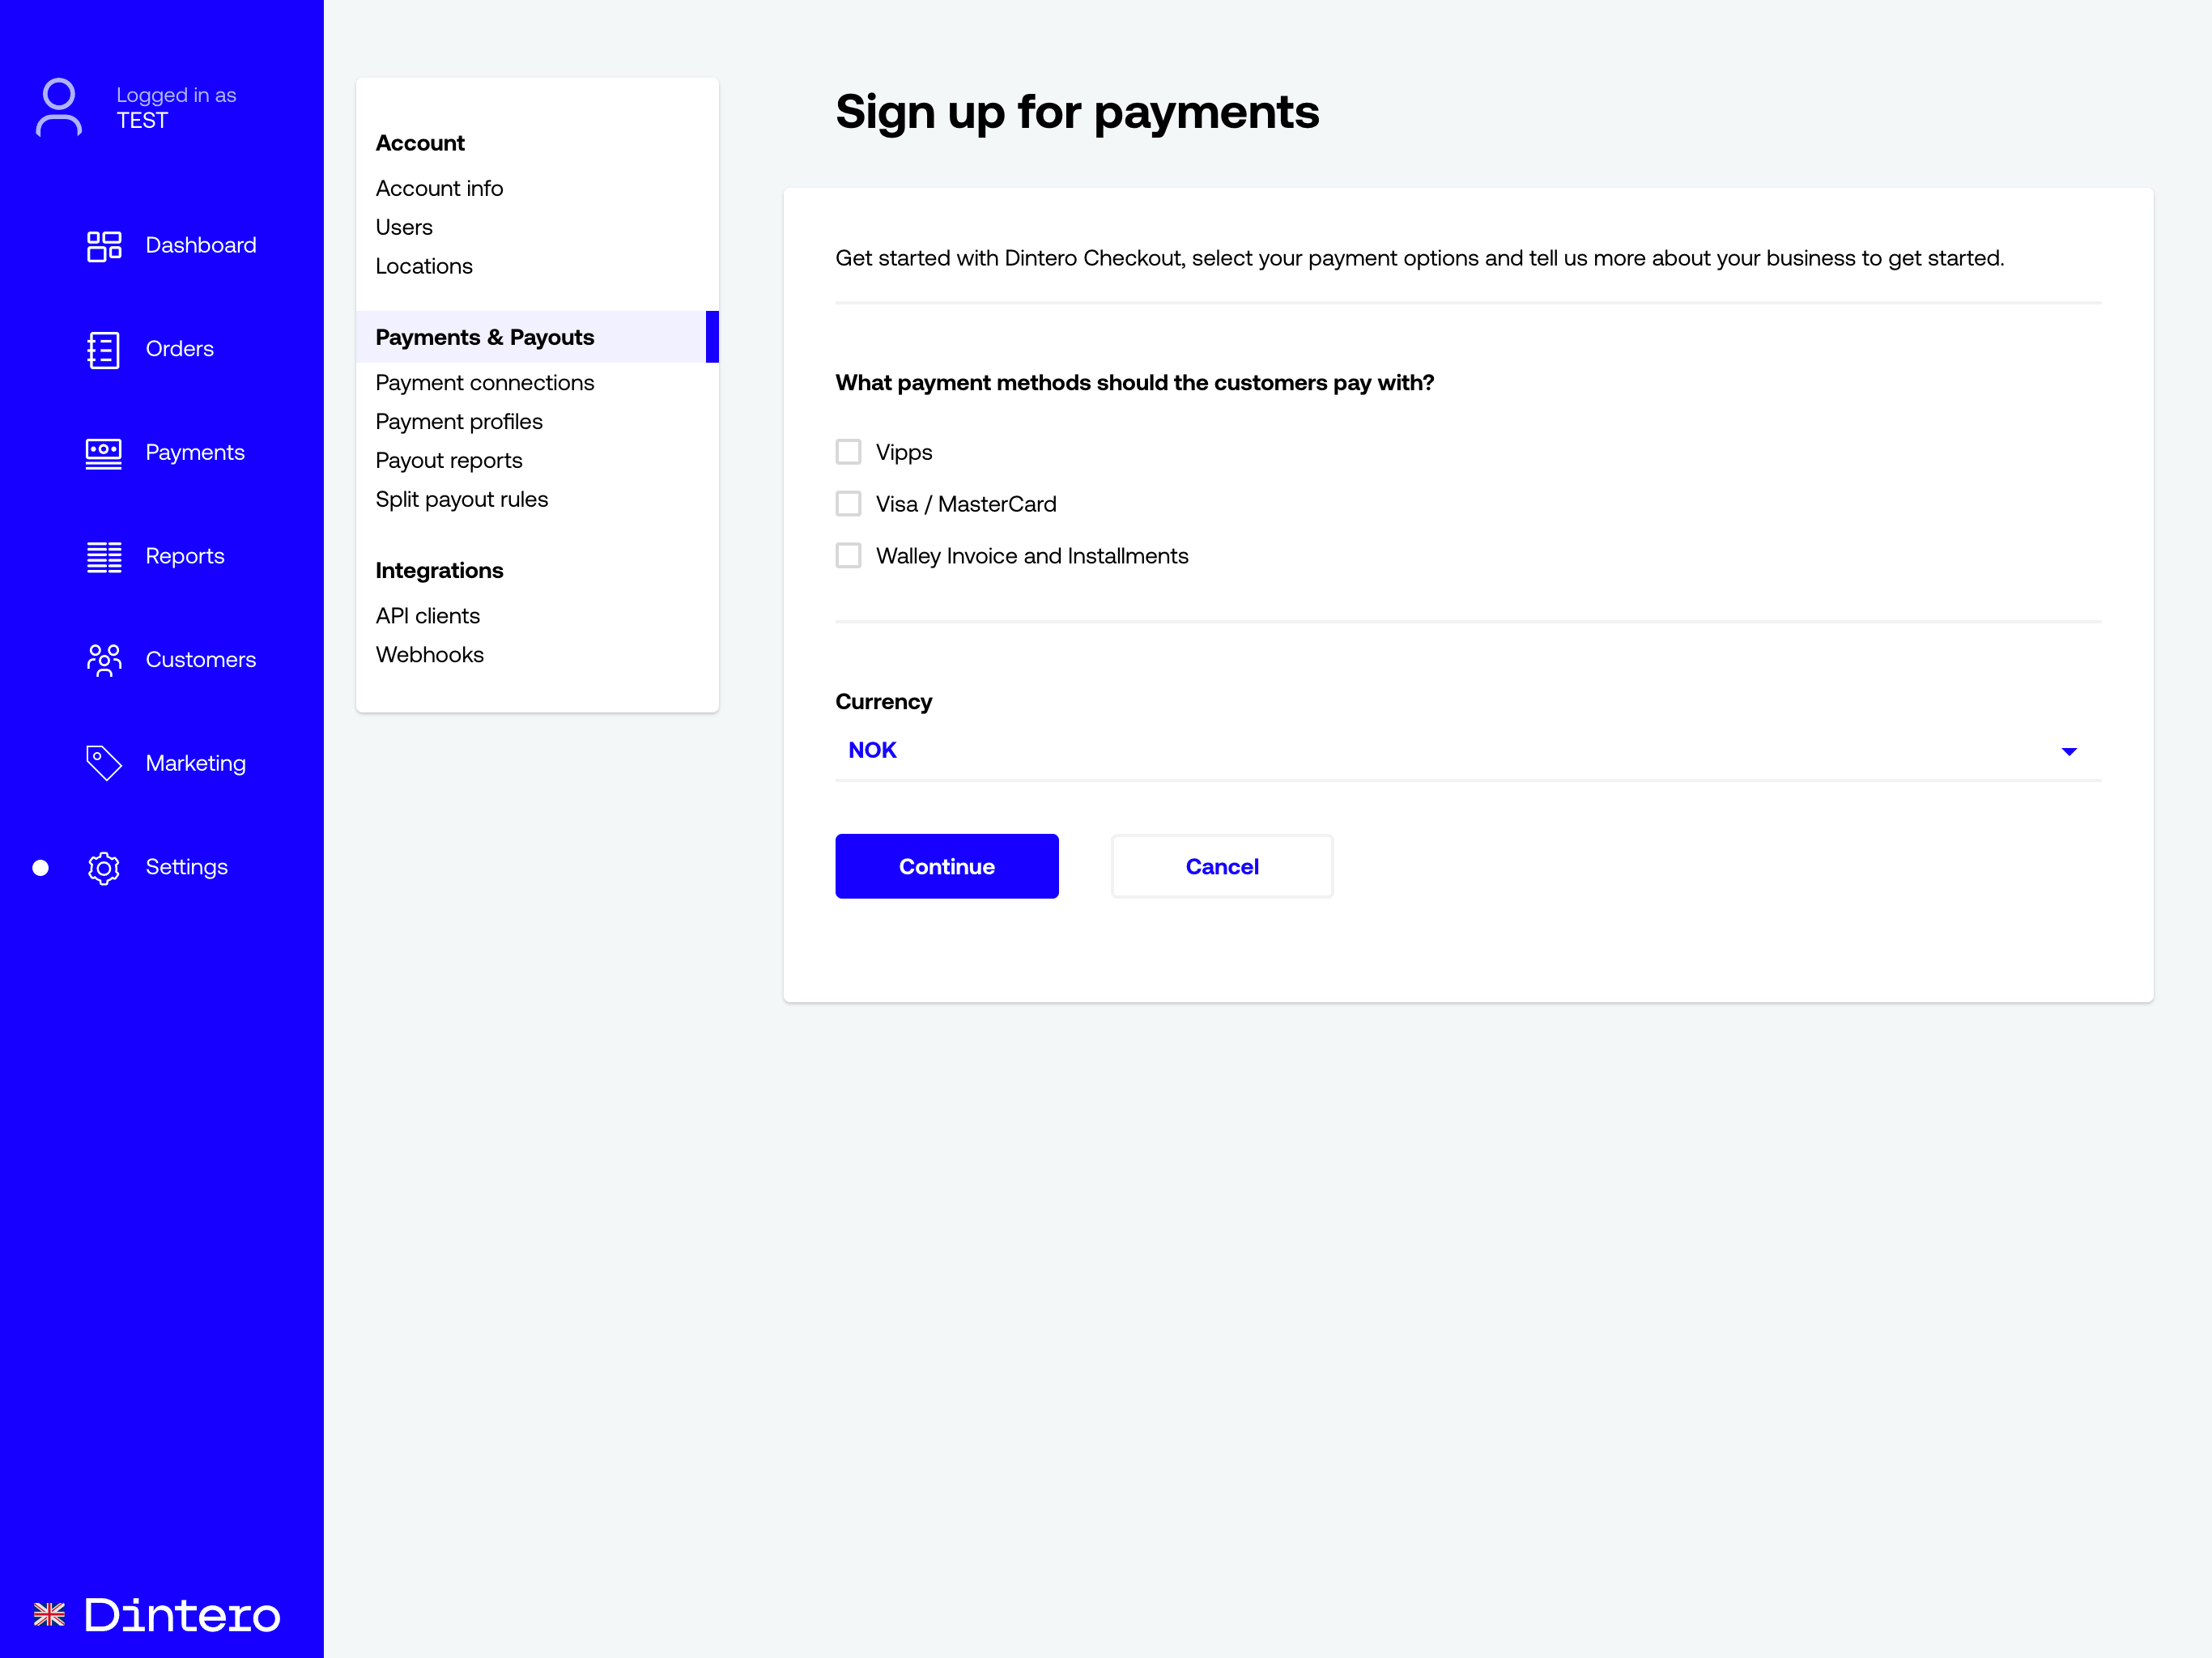 Payment connections